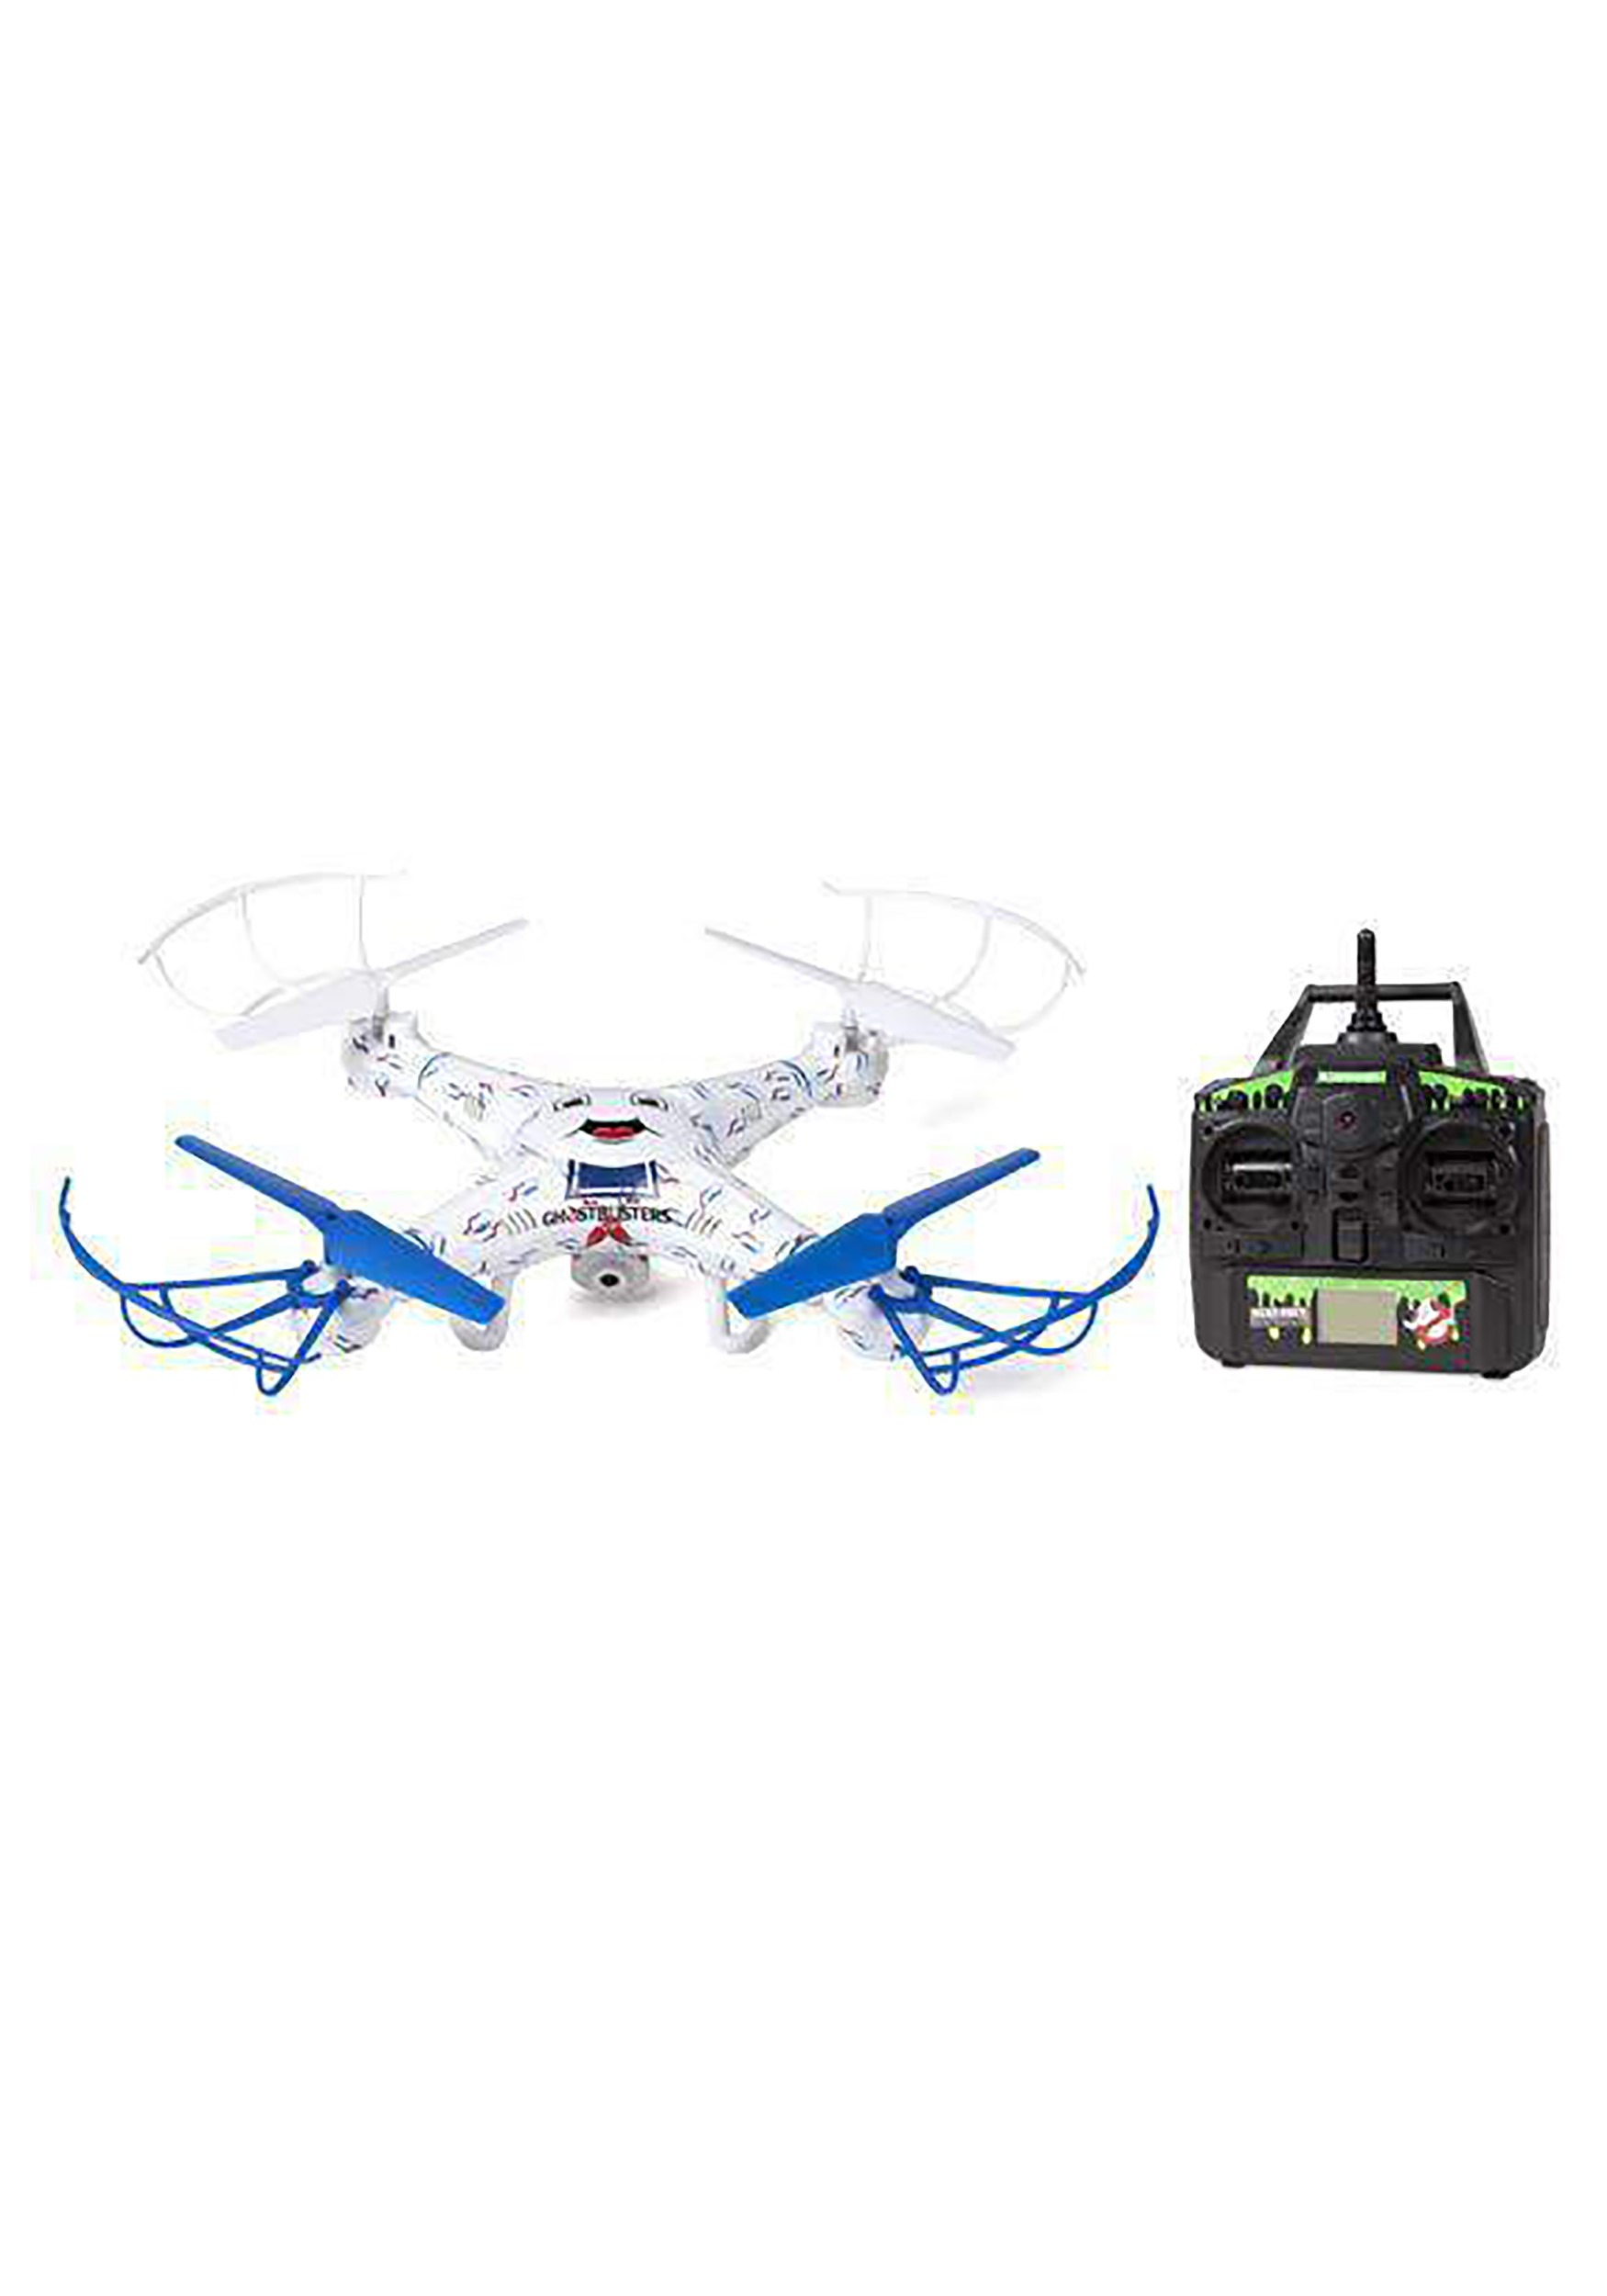 Ghostbusters Stay Puft 2.4GHz 4.5 Channel Video Camera RC Quadcopter